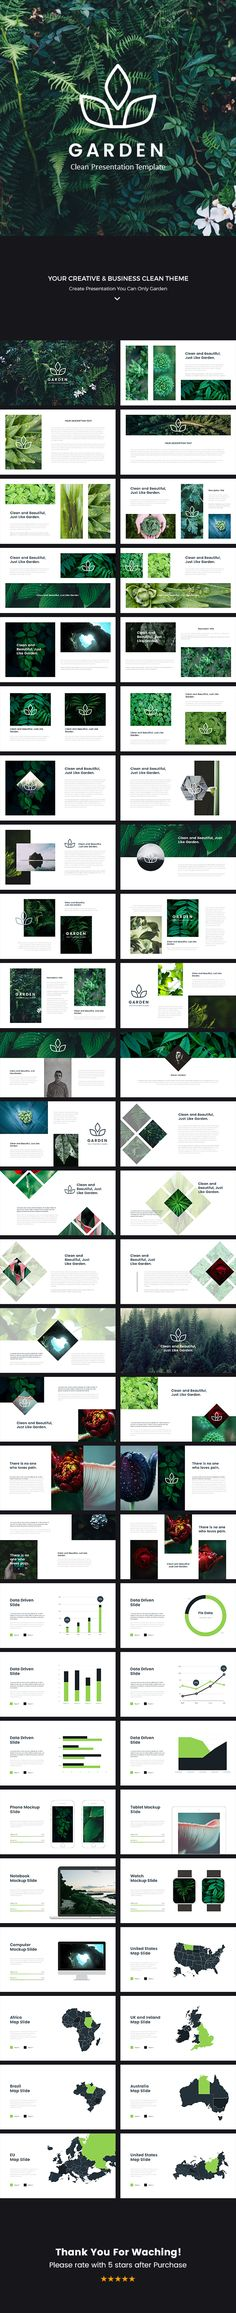 Garden Clean Keynote Template — Keynote KEY #sales • Download ➝ https://graphicriver.net/item/garden-clean-keynote-template/18819849?ref=pxcr